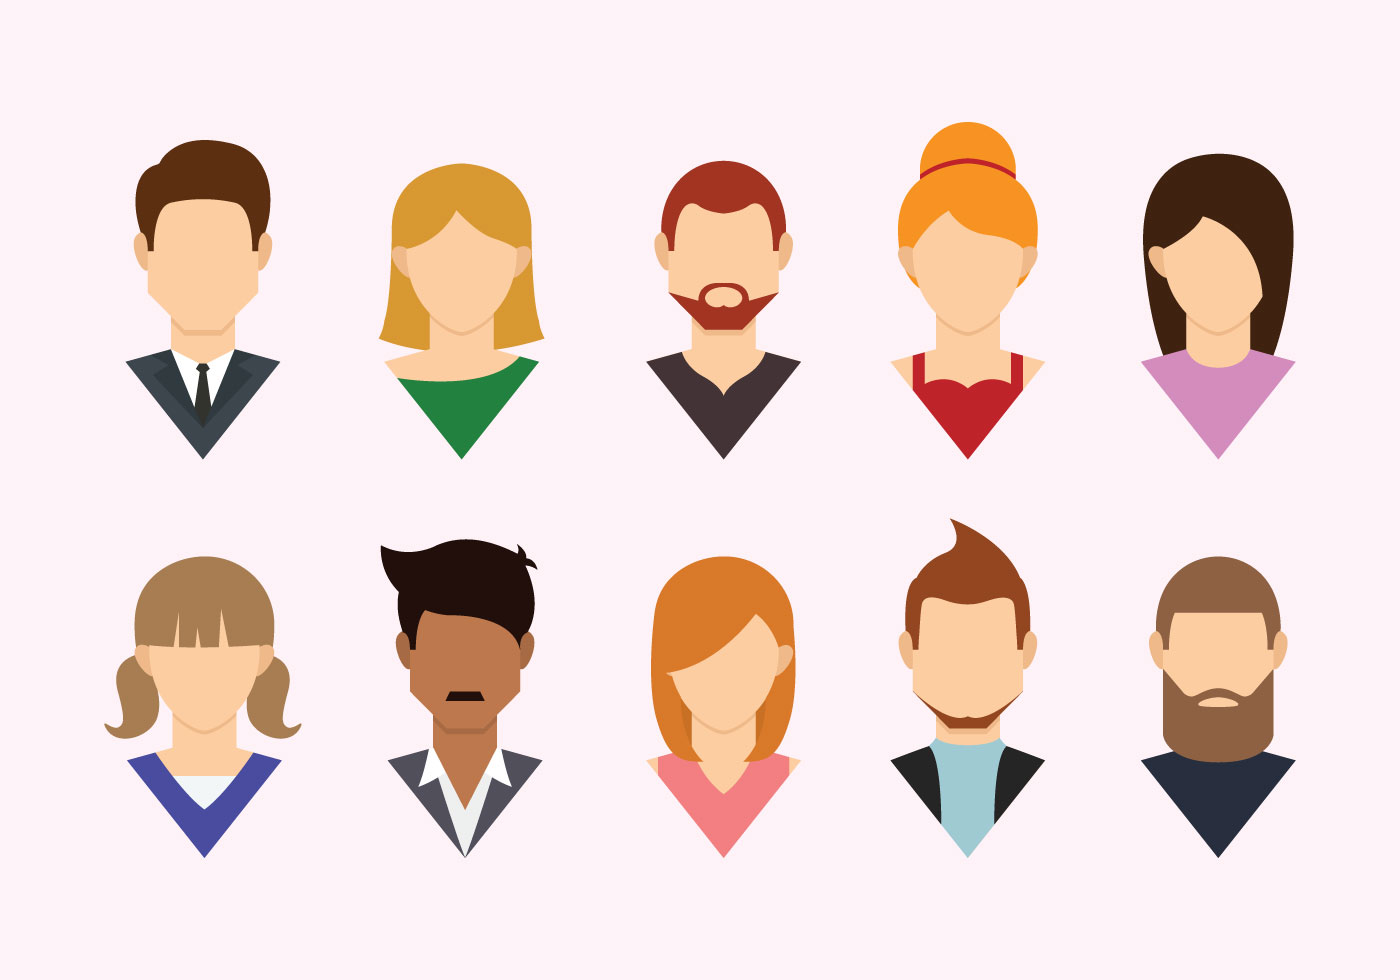 Face Free Vector Art - (42,300 Free Downloads)